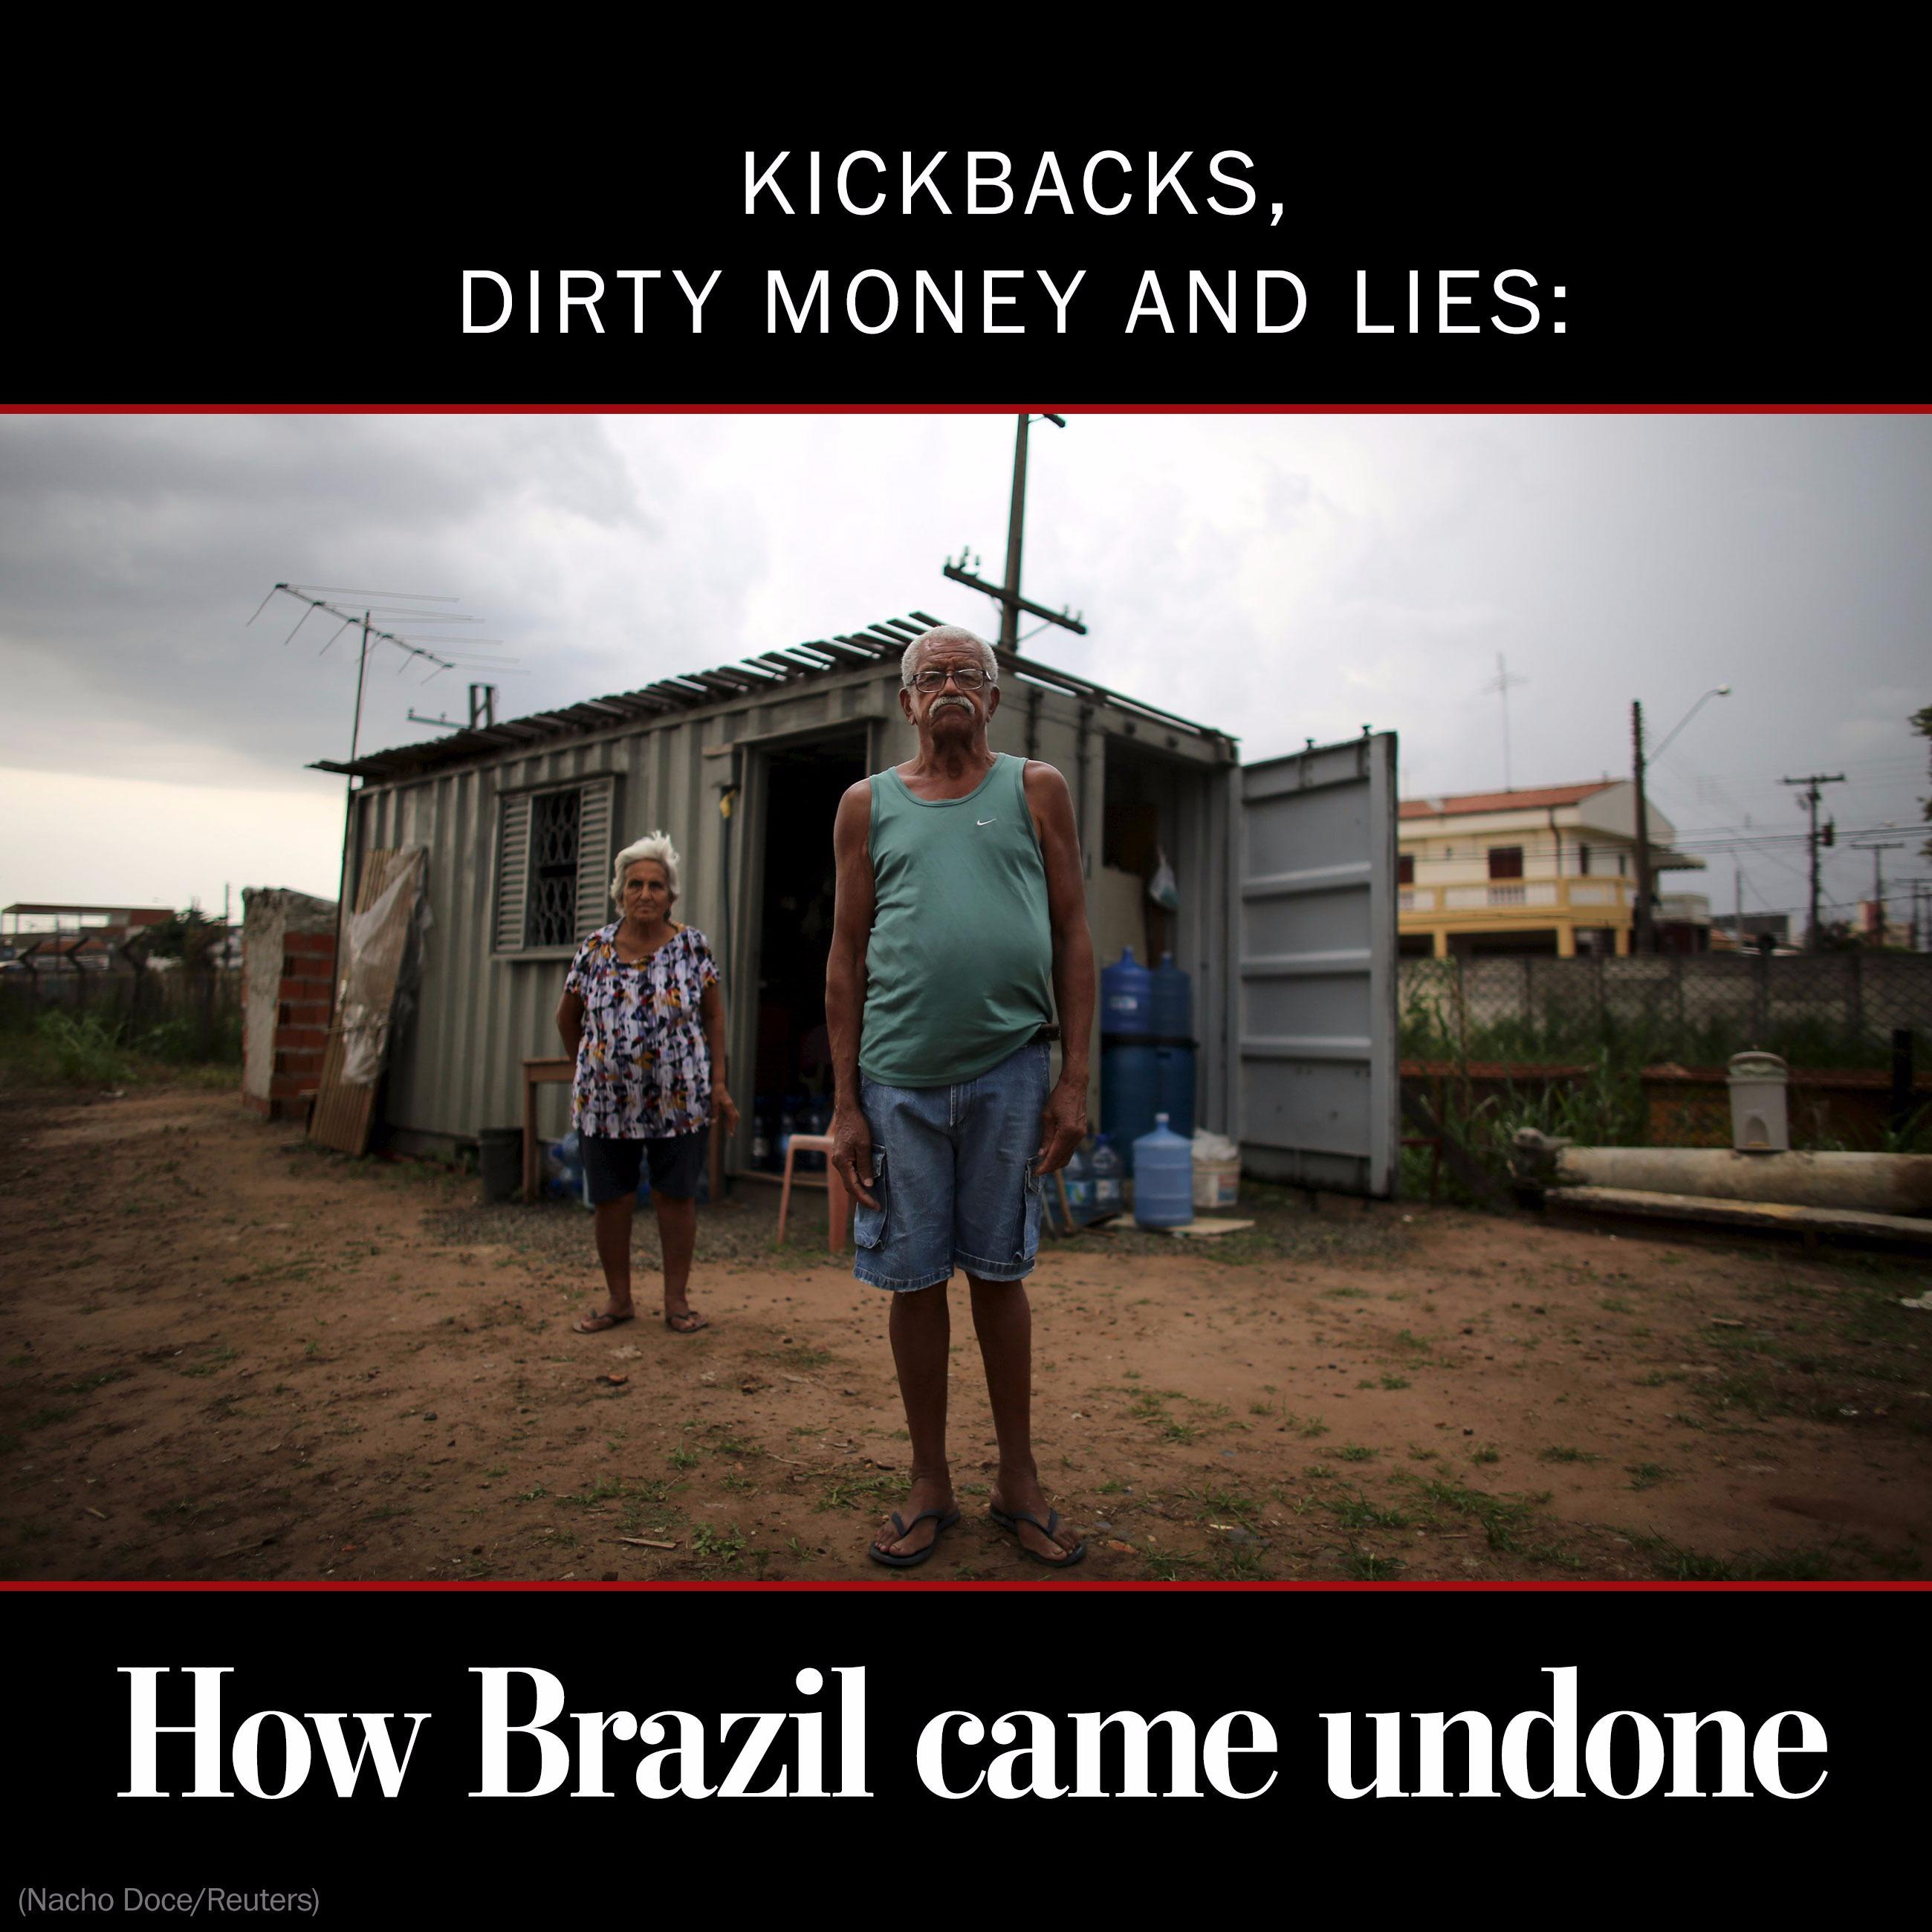 How Brazil, the darling of the developing world, came undone